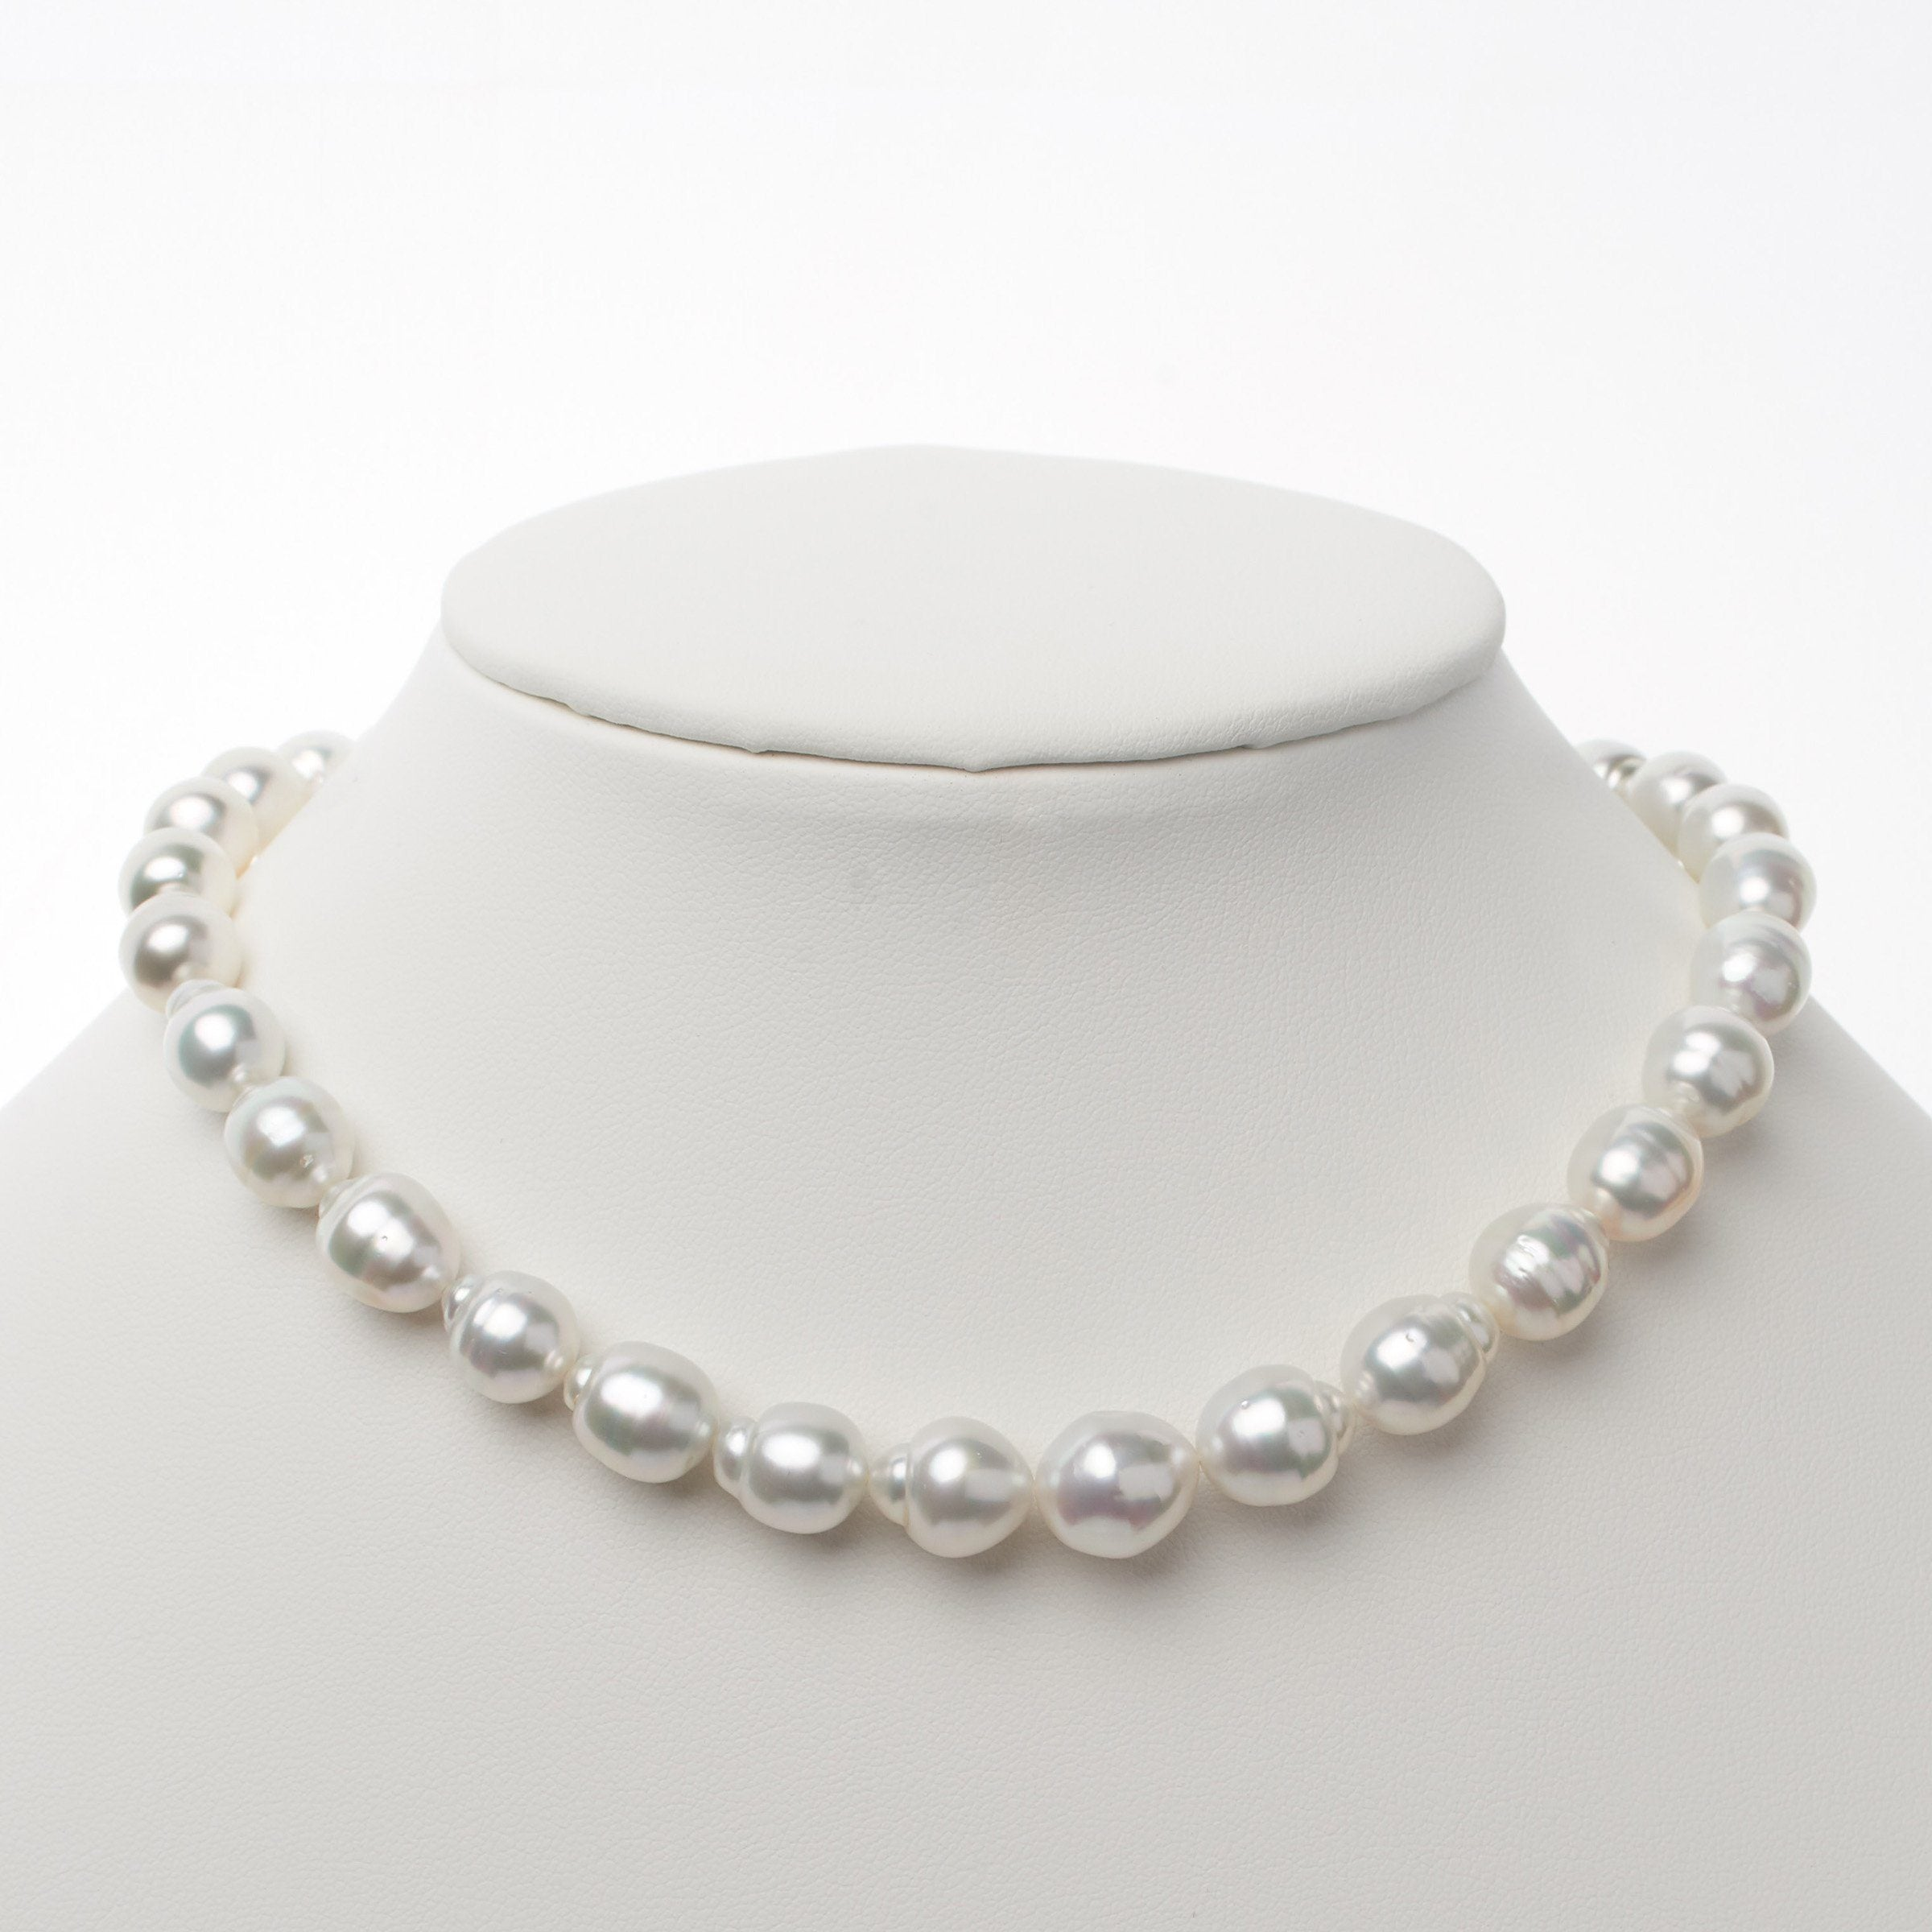 8.9-11.8 mm AA+/AAA White South Sea Baroque Necklace